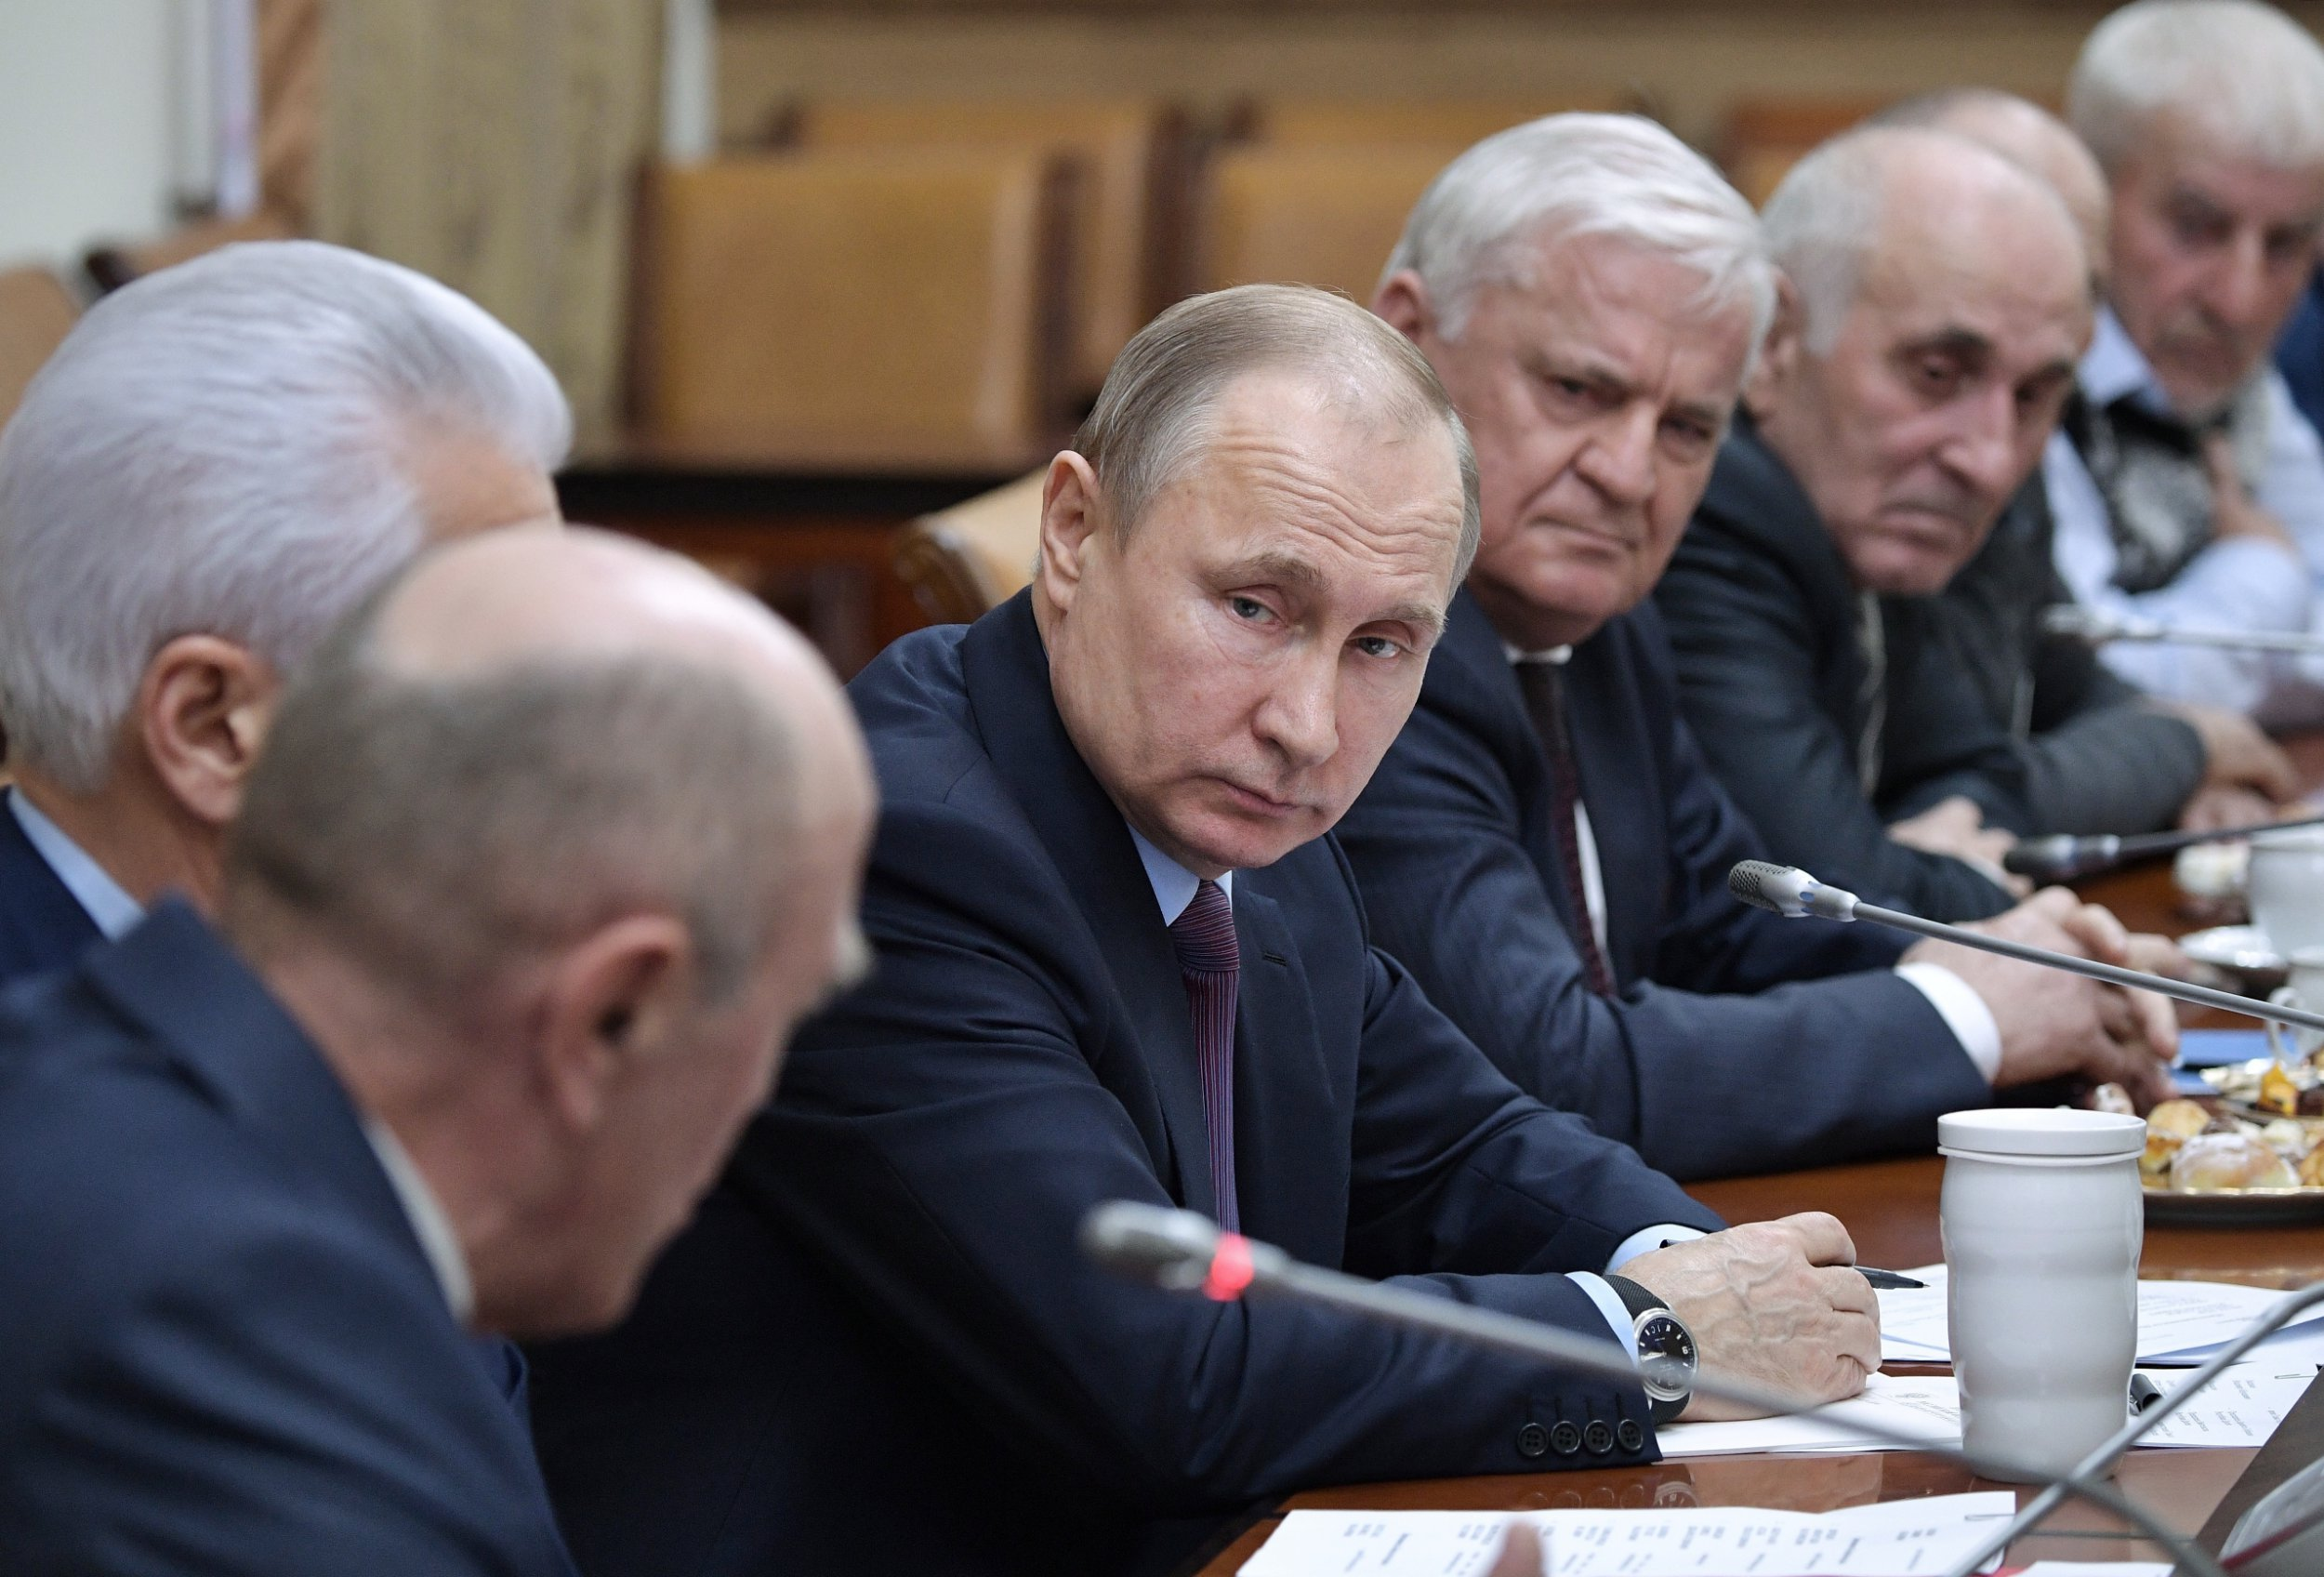 Russian President Vladimir Putin listens during a meeting with officials in Makhachkala, the capital of Dagestan, Russia, Tuesday, March 13, 2018. (Alexei Nikolsky, Sputnik, Kremlin Pool Photo via AP)